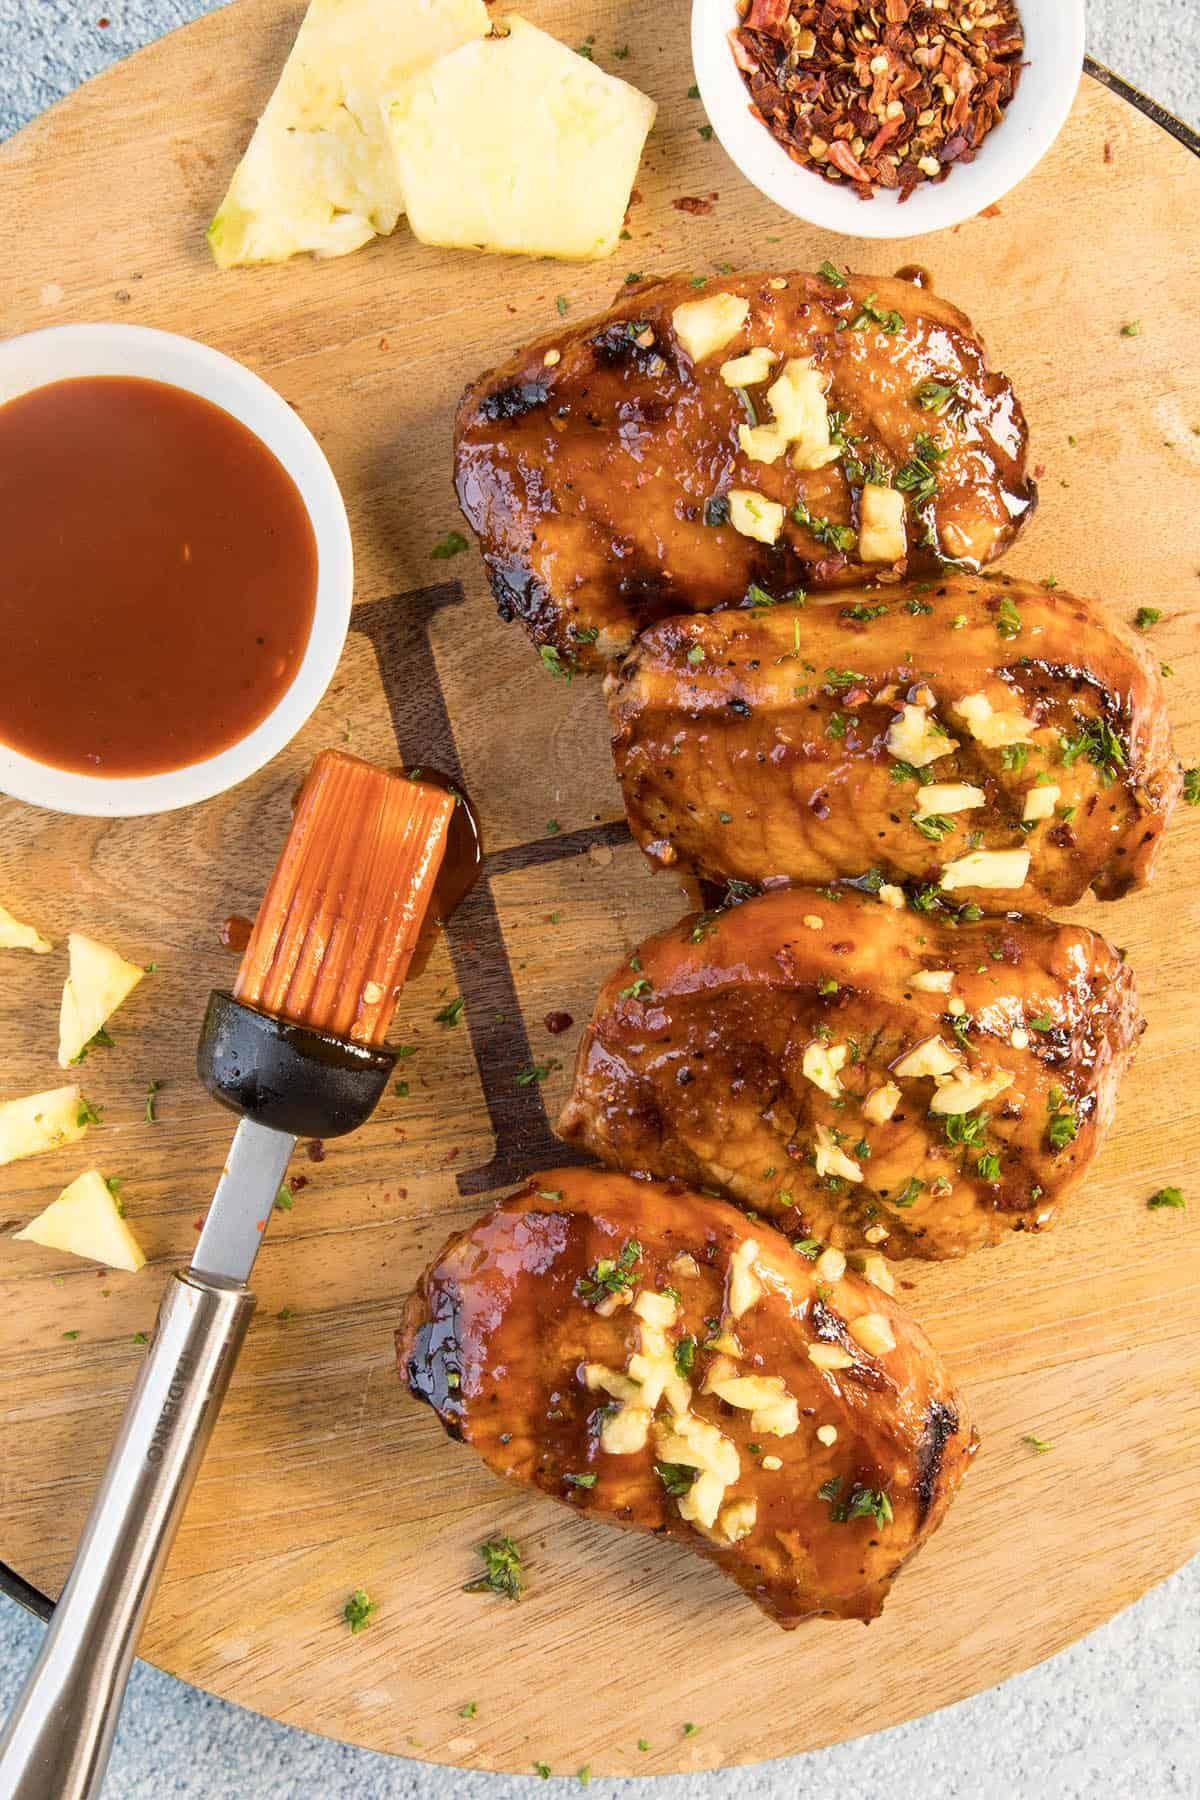 Grilled Pork Chops with Pineapple-Gochujang Glaze on a platter, ready to serve